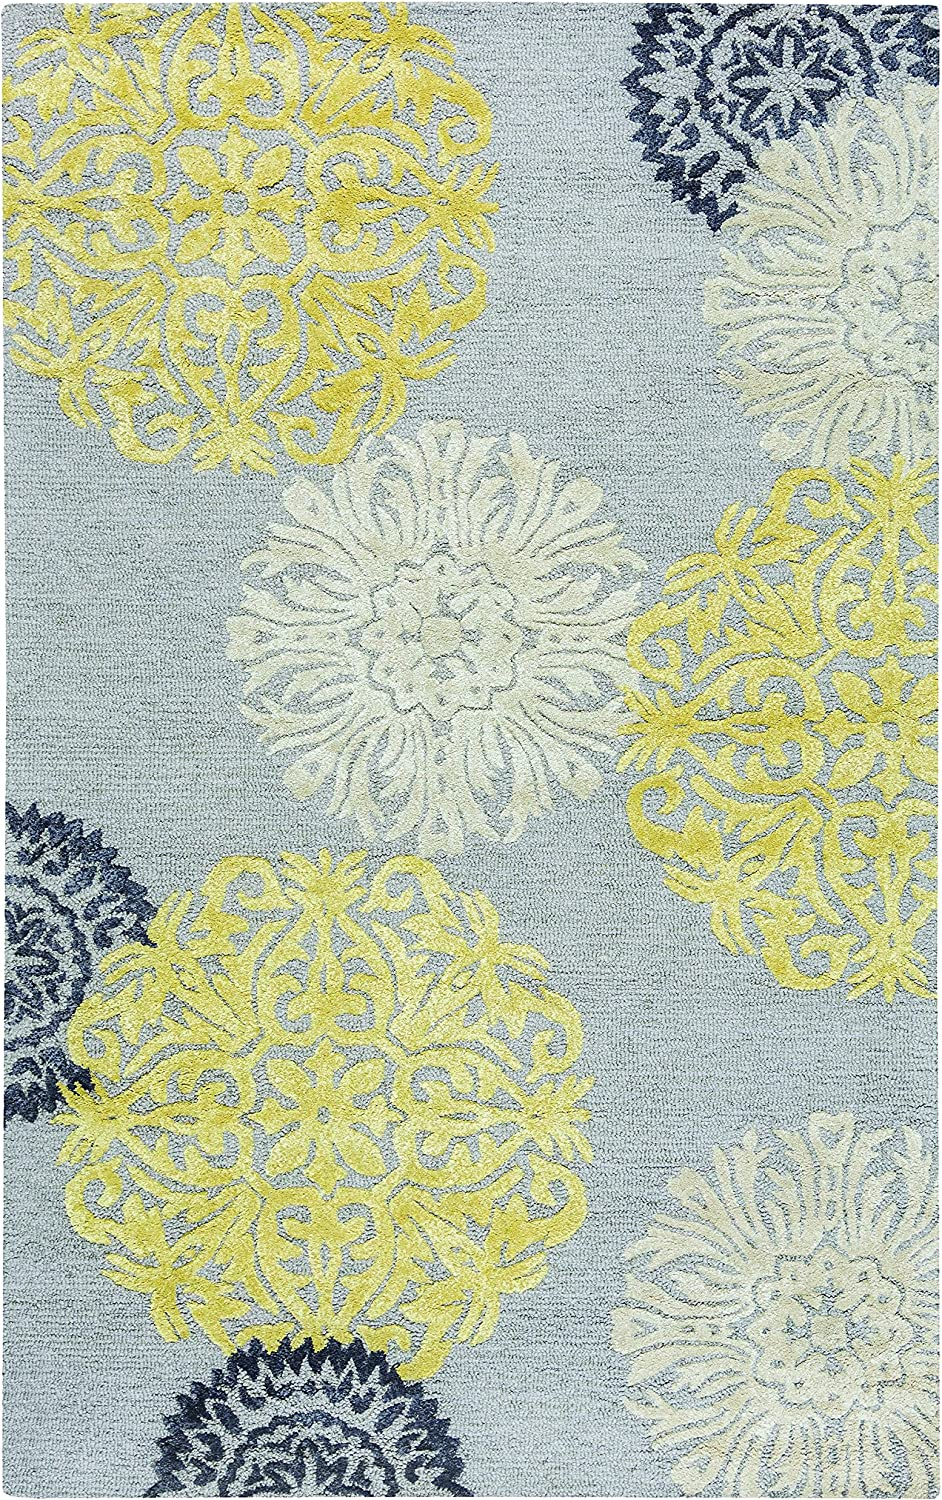 Rizzy Home Eden Harbor Collection Wool/Viscose Area Rug, 9' x 12', Yellow/Gray/Rust/Blue Medallion